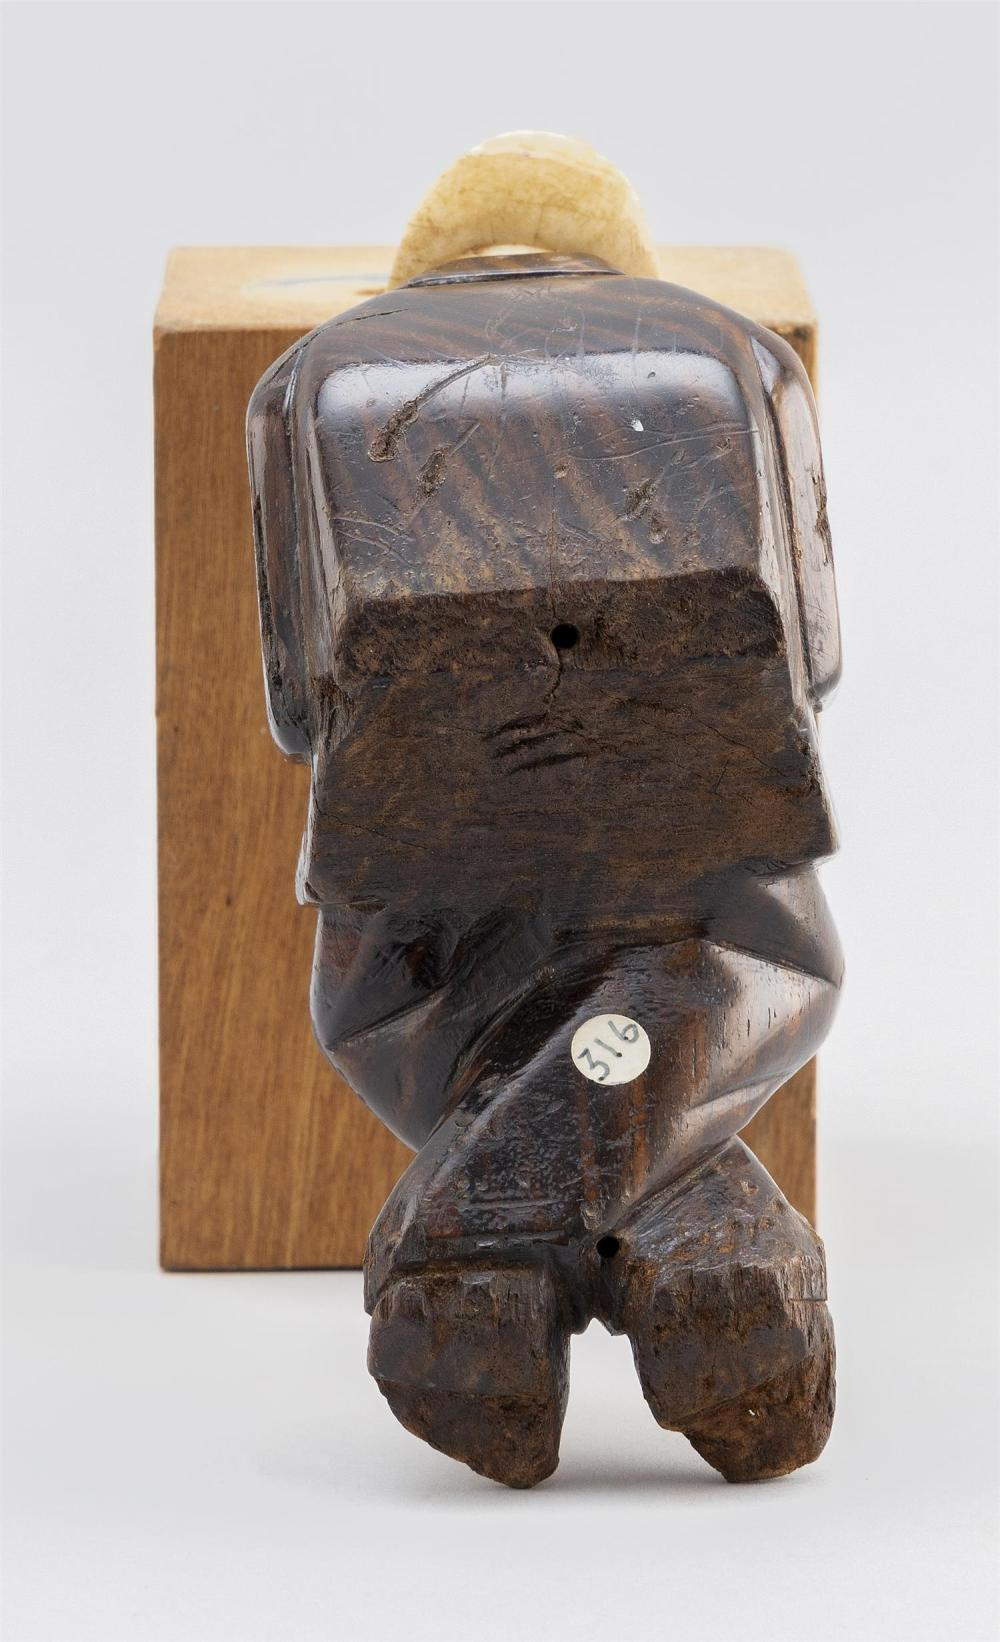 CARVED WHALE IVORY AND TROPICAL WOOD FIGURE OF A MAN A bearded man in a top hat, suit and tie, seated with his hands crossed over hi...